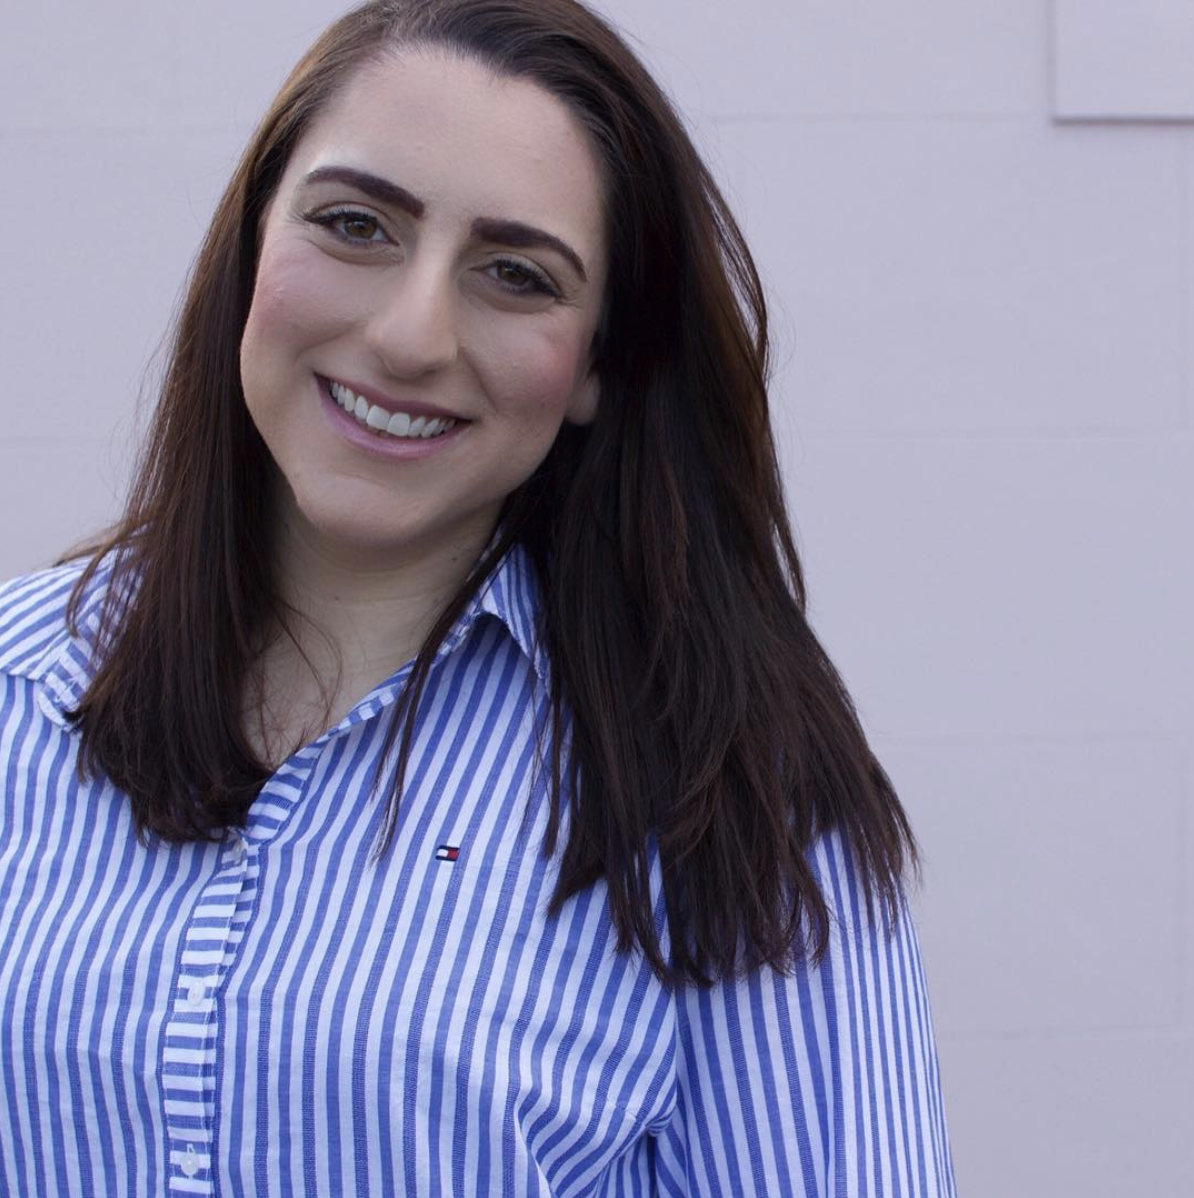 Madeline Nimeh - Madeline is an online coach who helps female entrepreneurs move out of fear and in to action. She is also the founder of The Fempreneur Hub which is an online platform that provides everything you need to confidently build an empire.WEBSITE | PODCAST | INSTAGRAM |